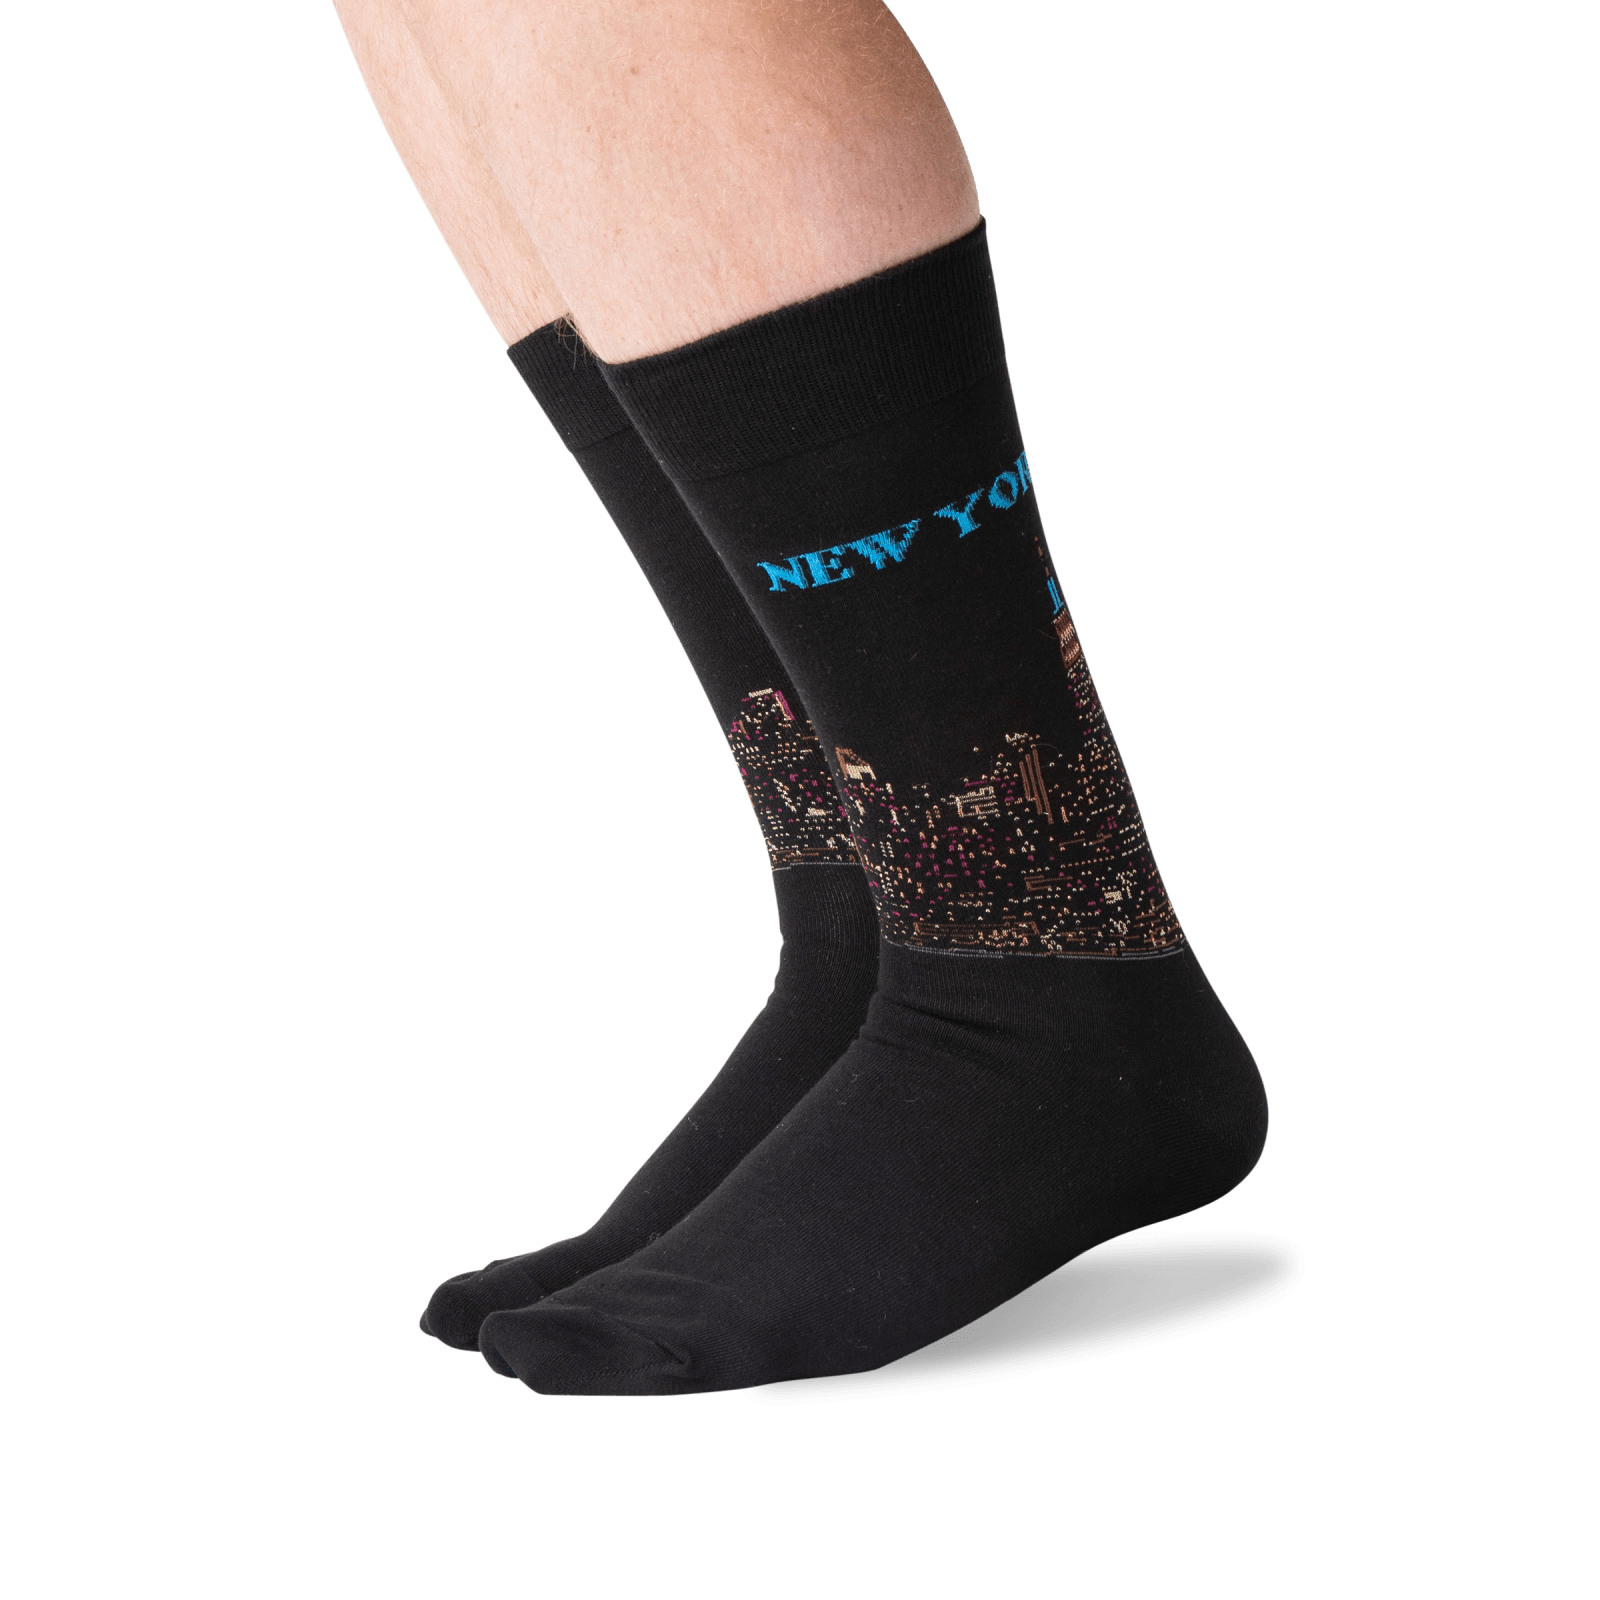 Men's New York Crew Socks - Wanderlustre